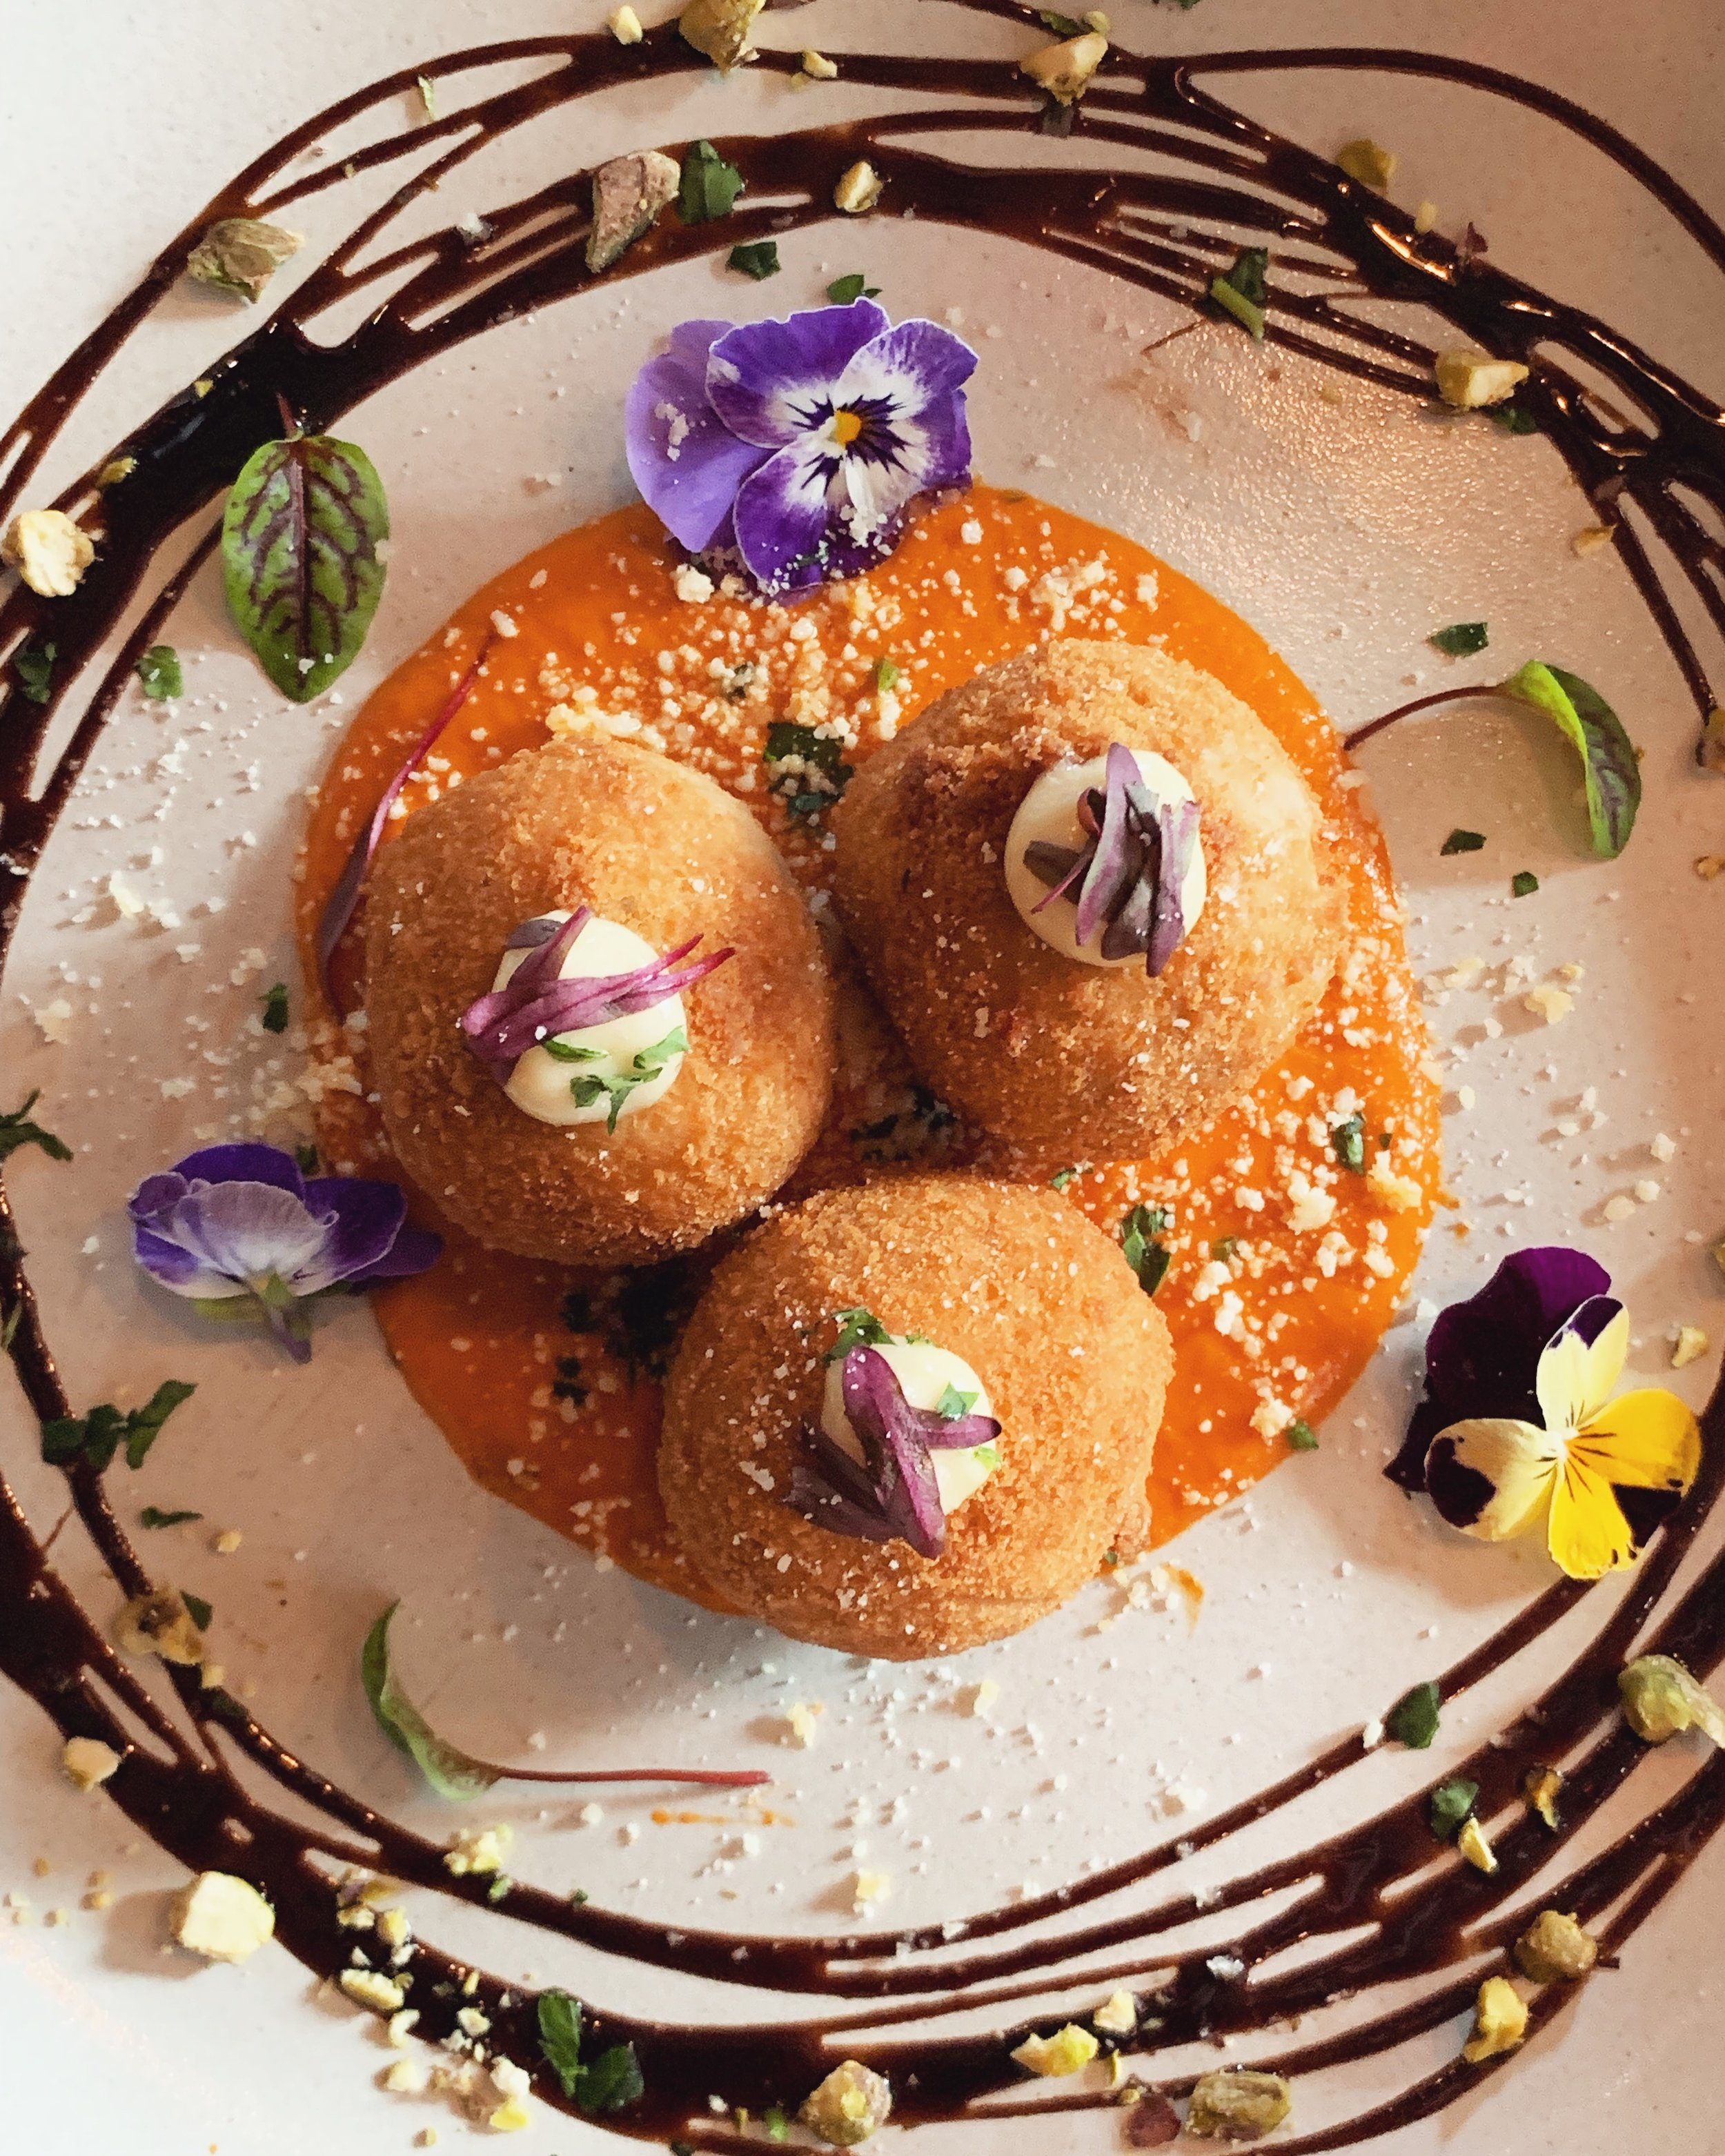 25 June - 2 July - These aren't just any arancini! Our entree special this week brings you white Spanish bean croquettes with Smokey scamorza cheese, on a cradle of Nonna's napoletana sauce.~All luncheons deserve a good party starter!